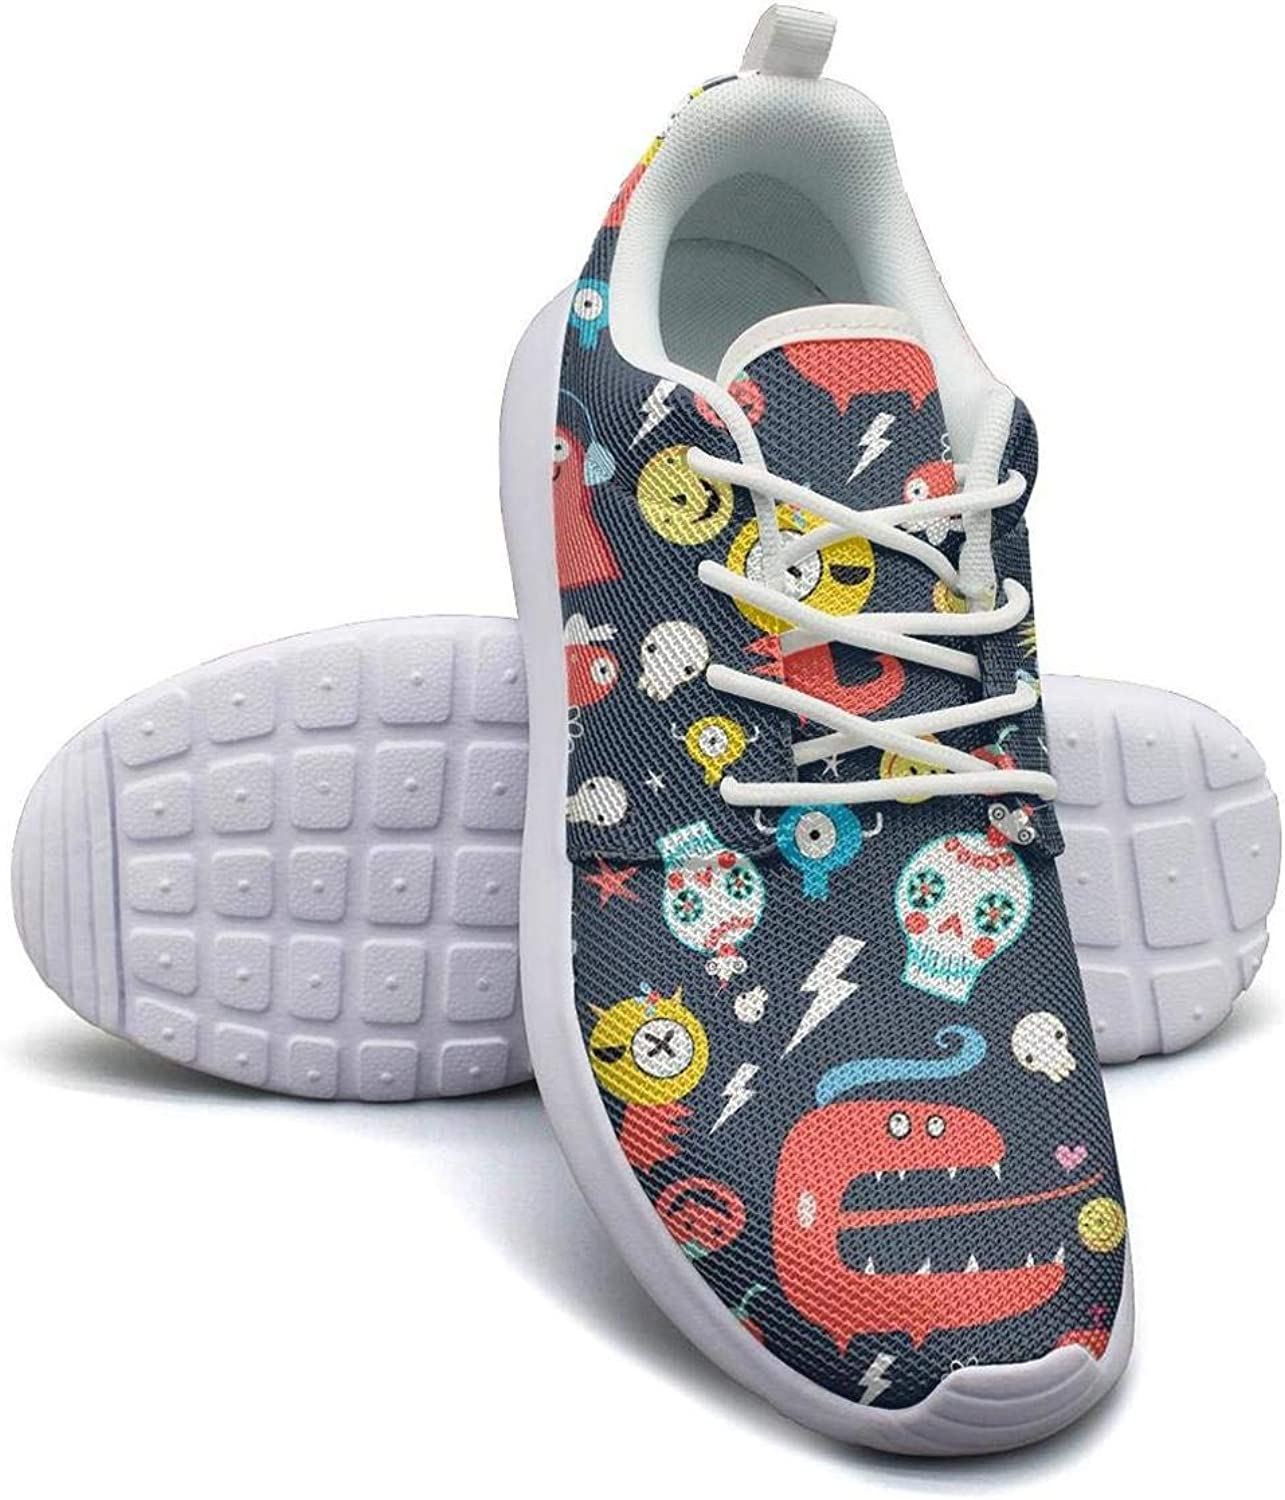 Kanf saysfg Cute Doodle Halloween Fashion Running Sneakers for Women Lightweight Breathabl Athletic shoes